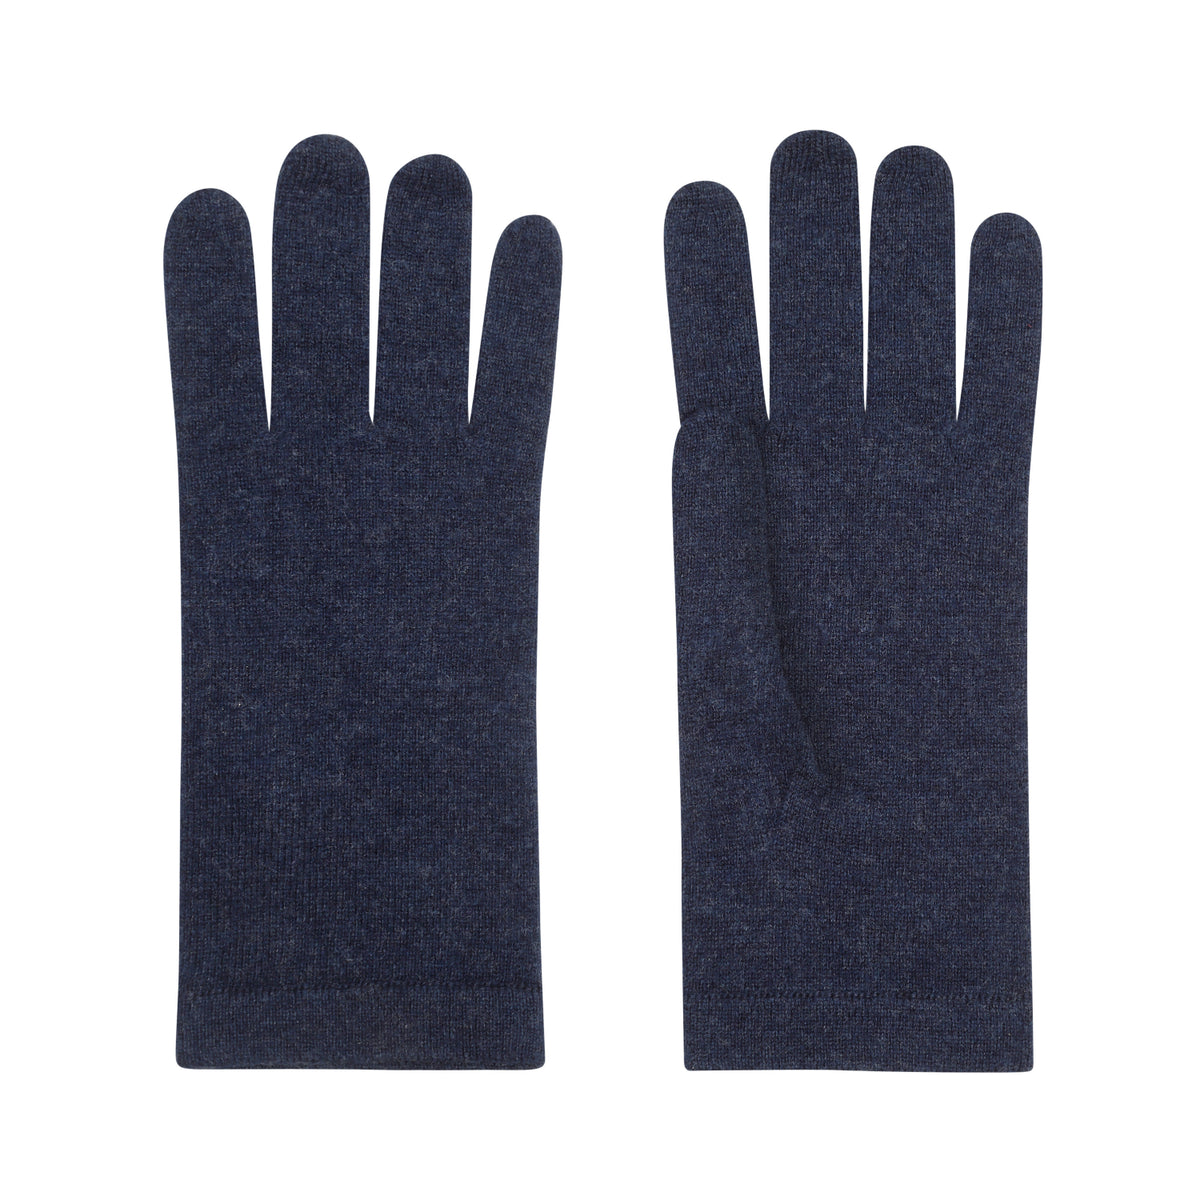 Ladies Navy Blue Cashmere Gloves | Shop now at The Cashmere Choice | London